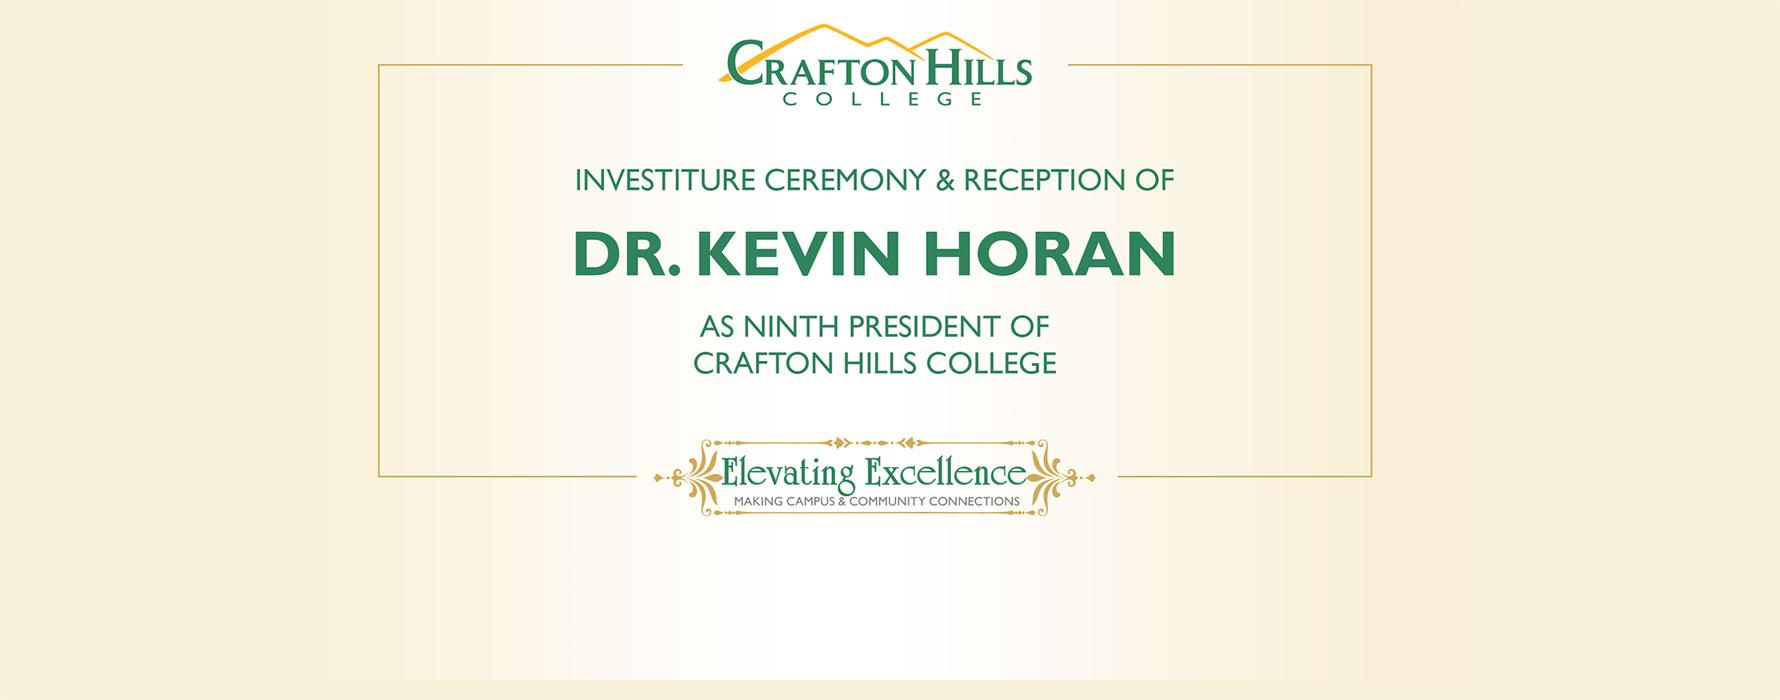 Crafton Hills College: Investiture Ceremony & Reception of Dr. Kevin Horan as ninth president of Crafton Hills College. Elevating Excellence: Making Campus and Community Connections